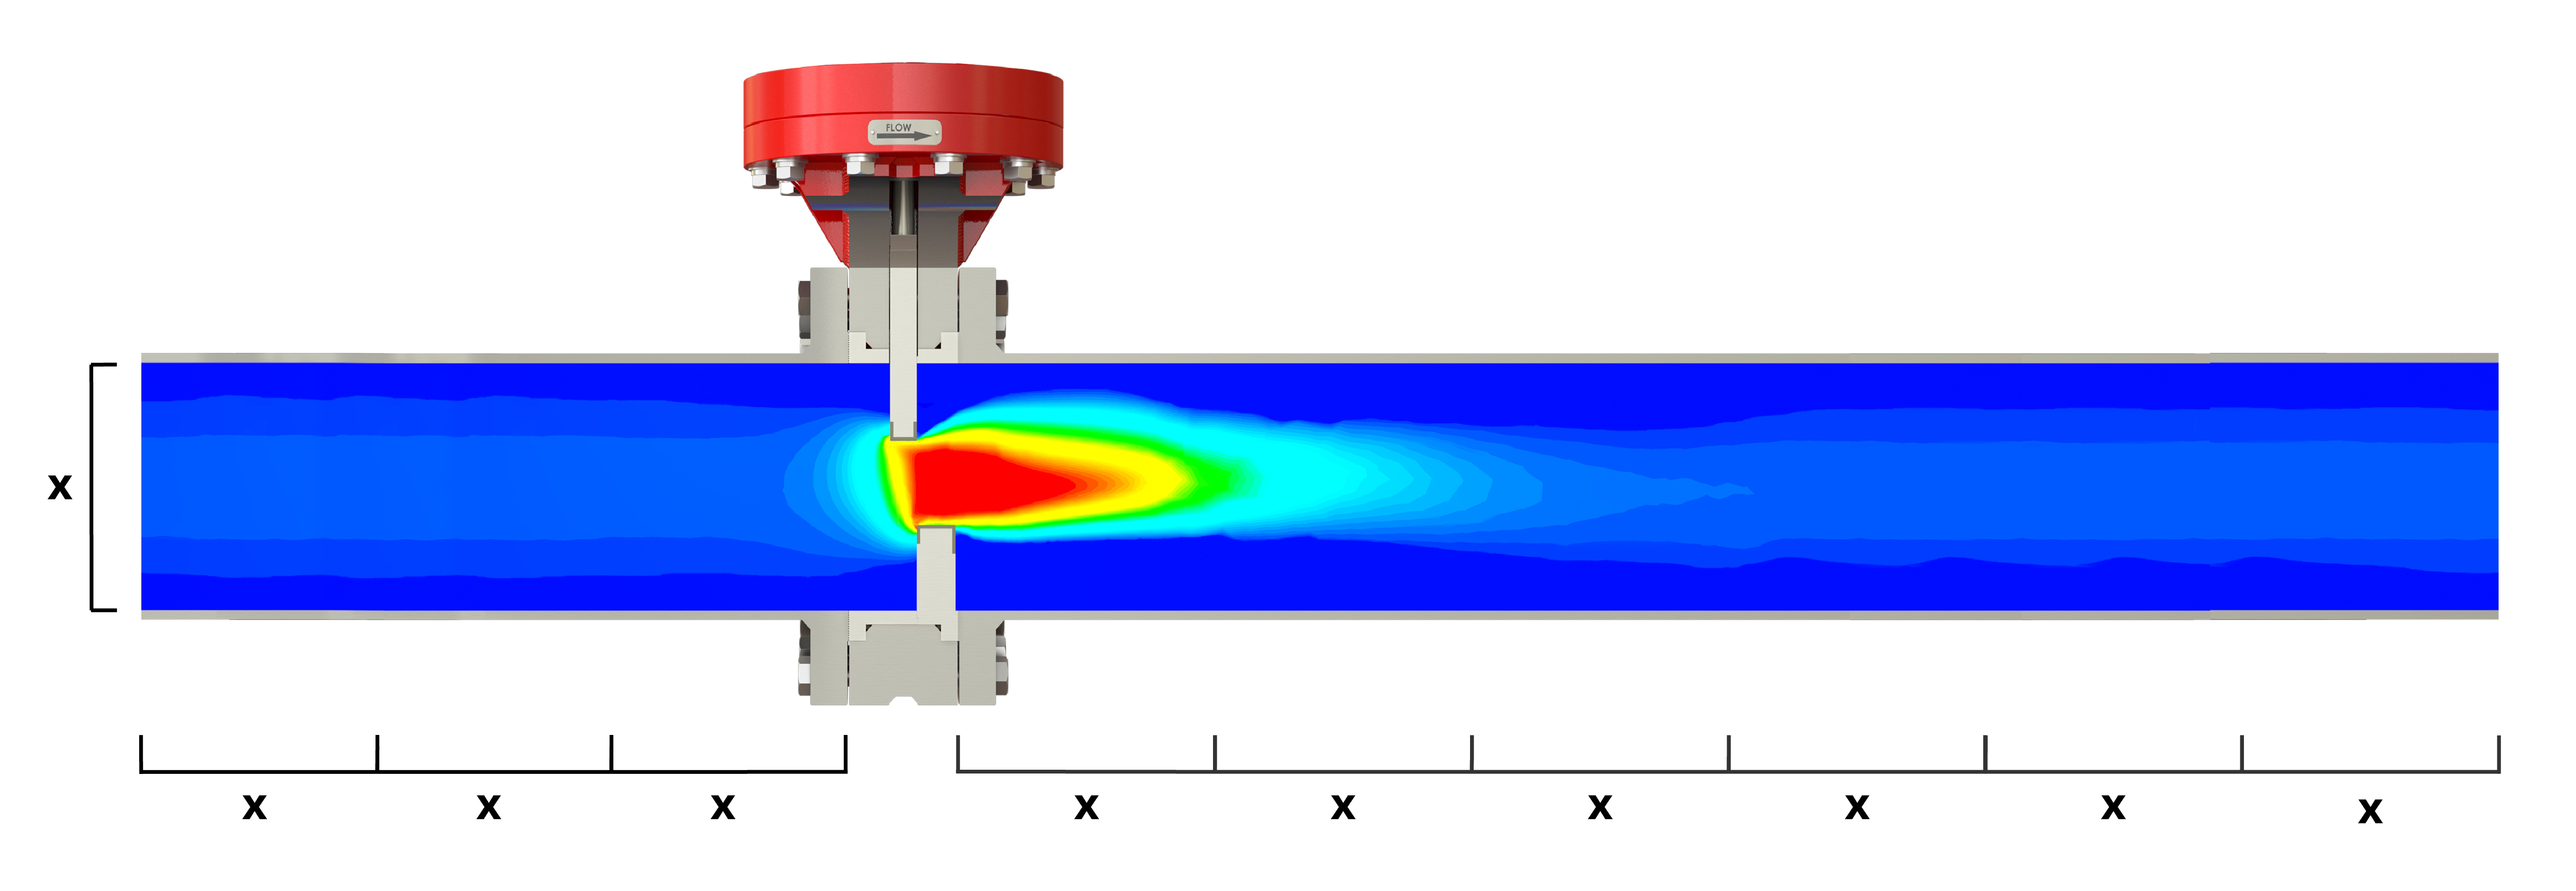 SlurryFlo control valve diagram depicting the necessary length of pipe upstream and downstream.